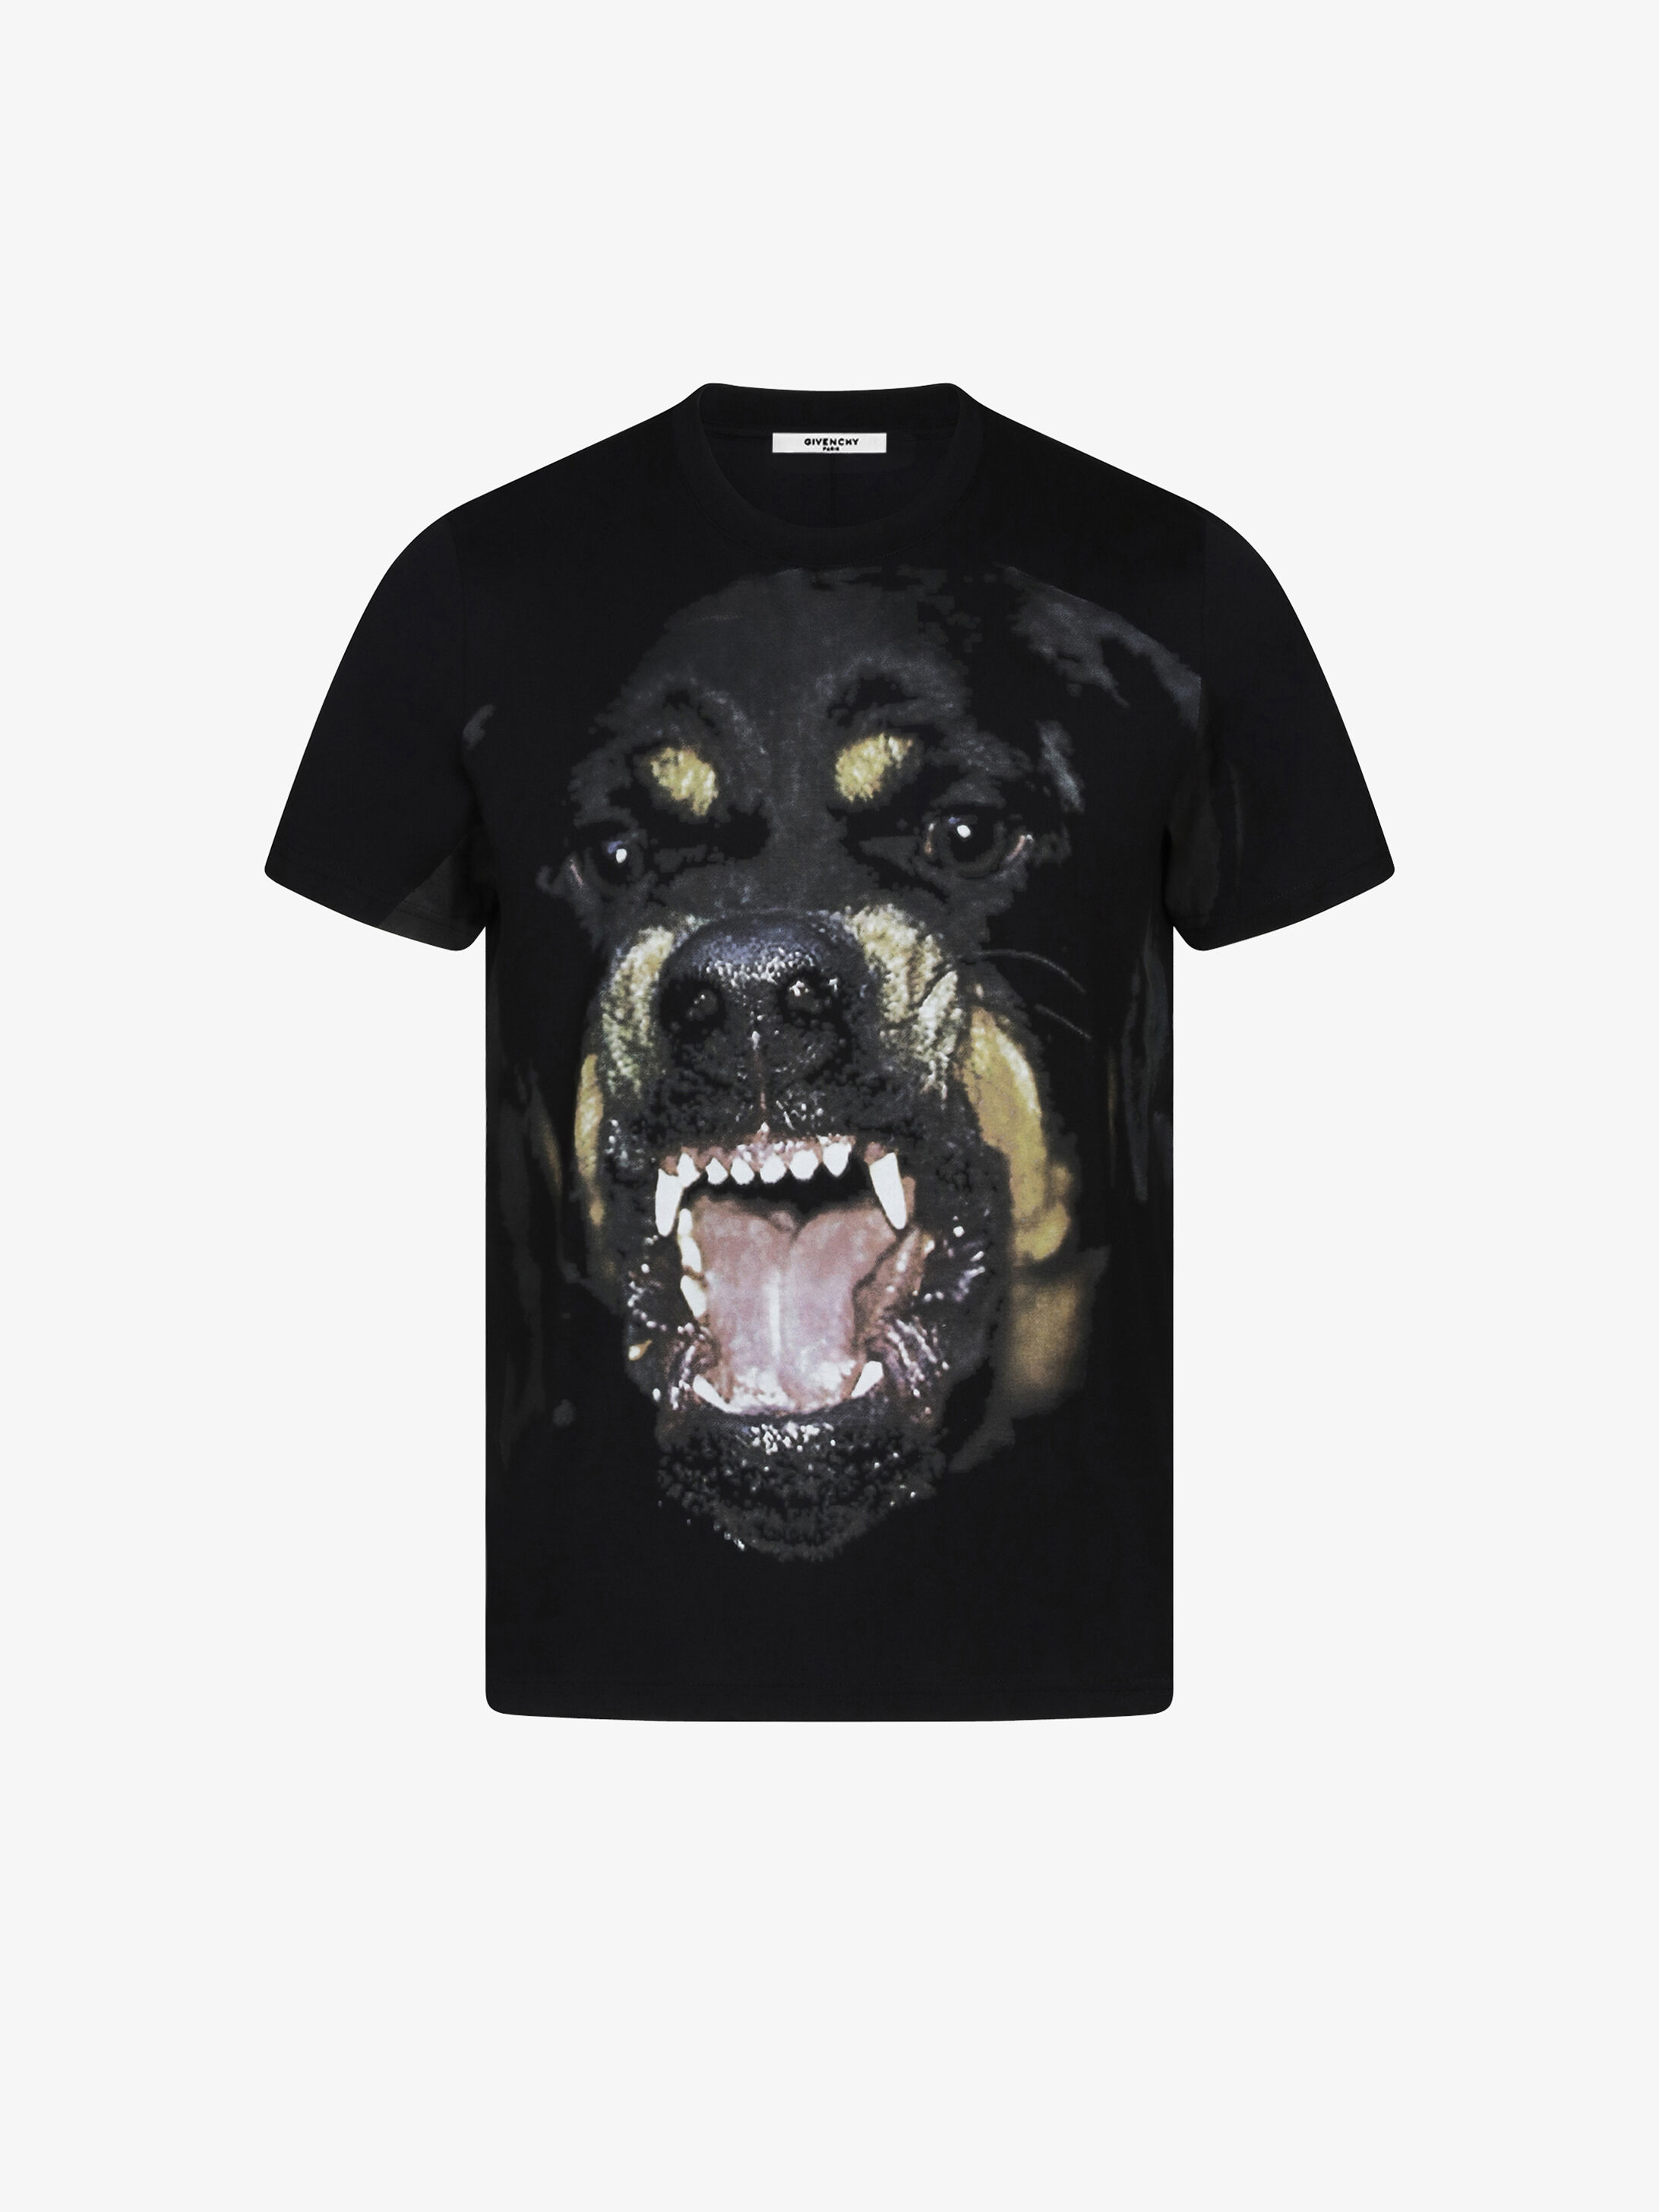 ed5a1944 Givenchy Rottweiler printed T-shirt | GIVENCHY Paris